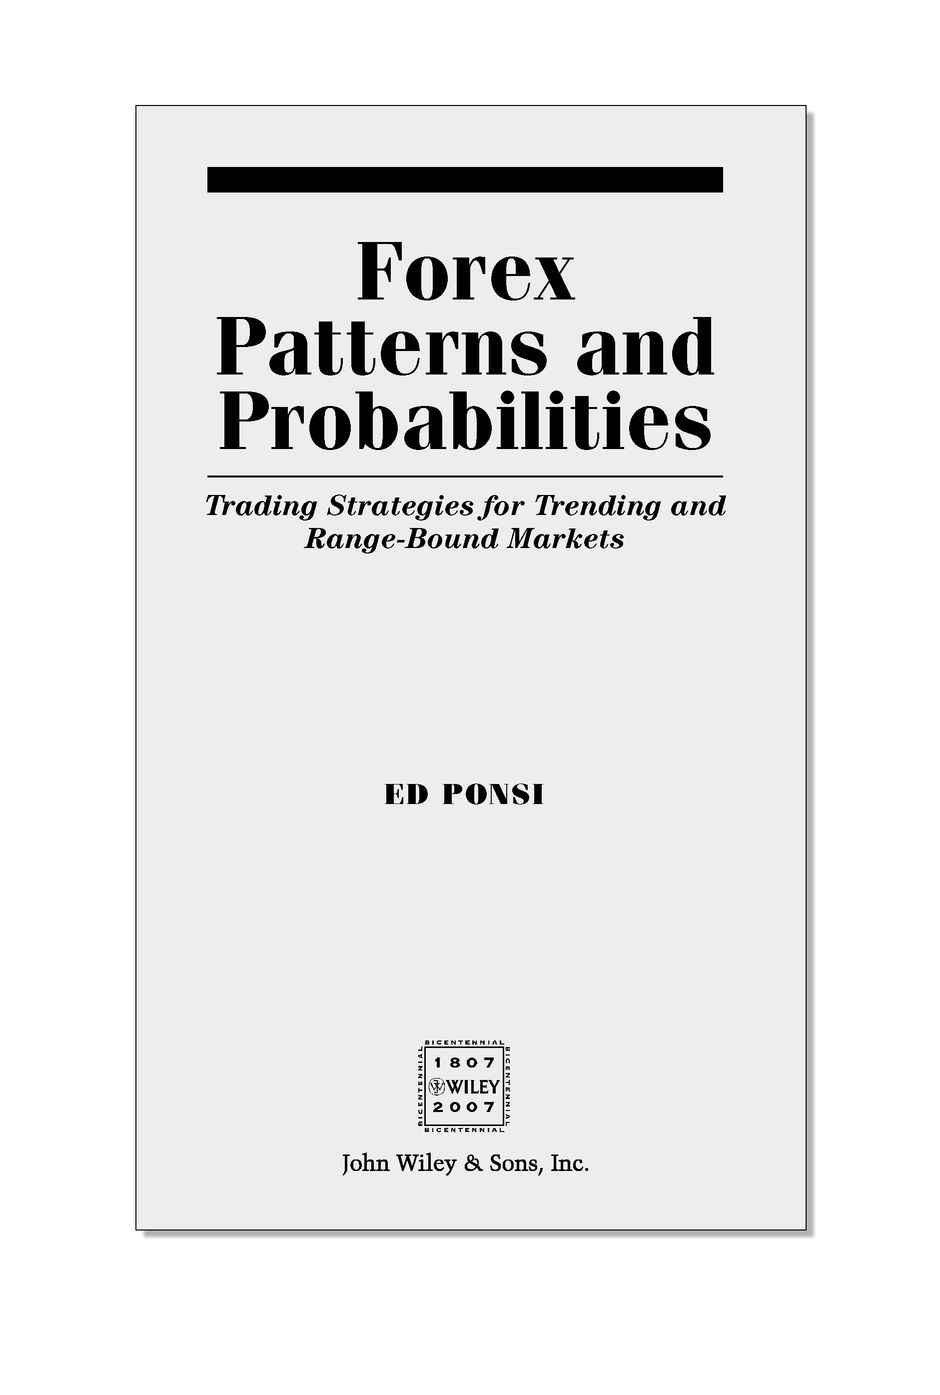 Forex Patterns and Probabilities: Trading Strategies for Trending